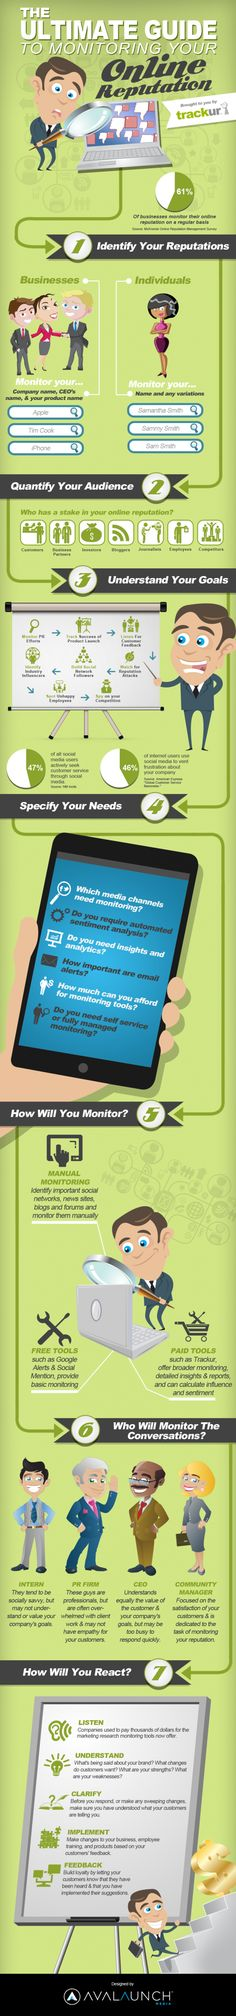 Useful step-by-step instructions - How to Monitor Your Online Reputation #infographic